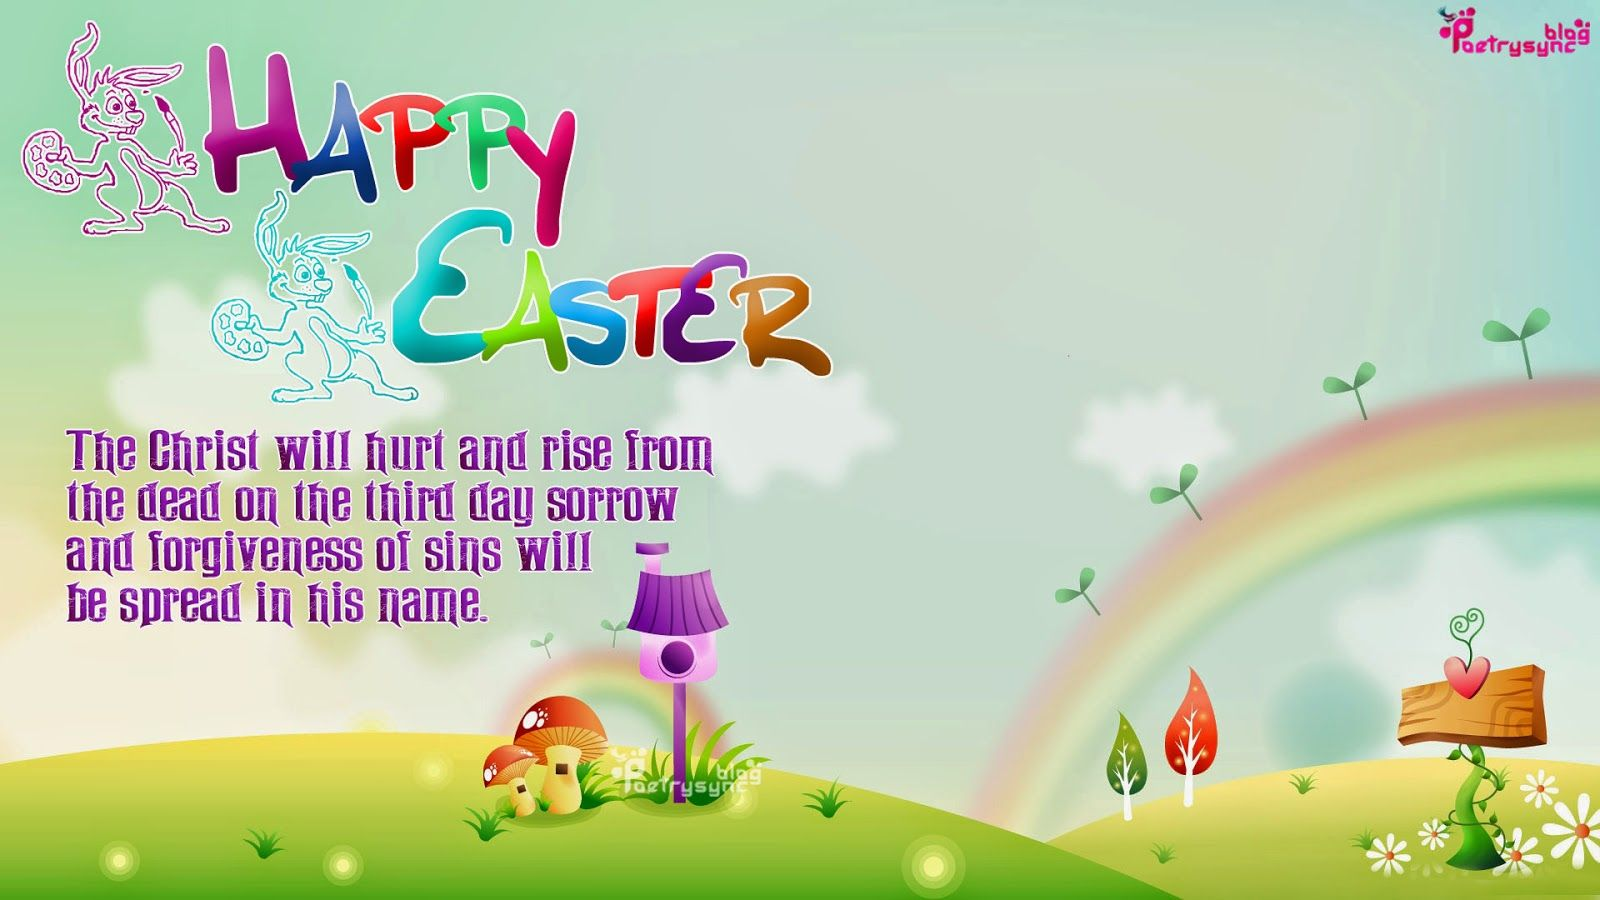 Happy easter wishes flowers sms wallpaper easter pinterest happy easter wishes flowers sms wallpaper kristyandbryce Image collections